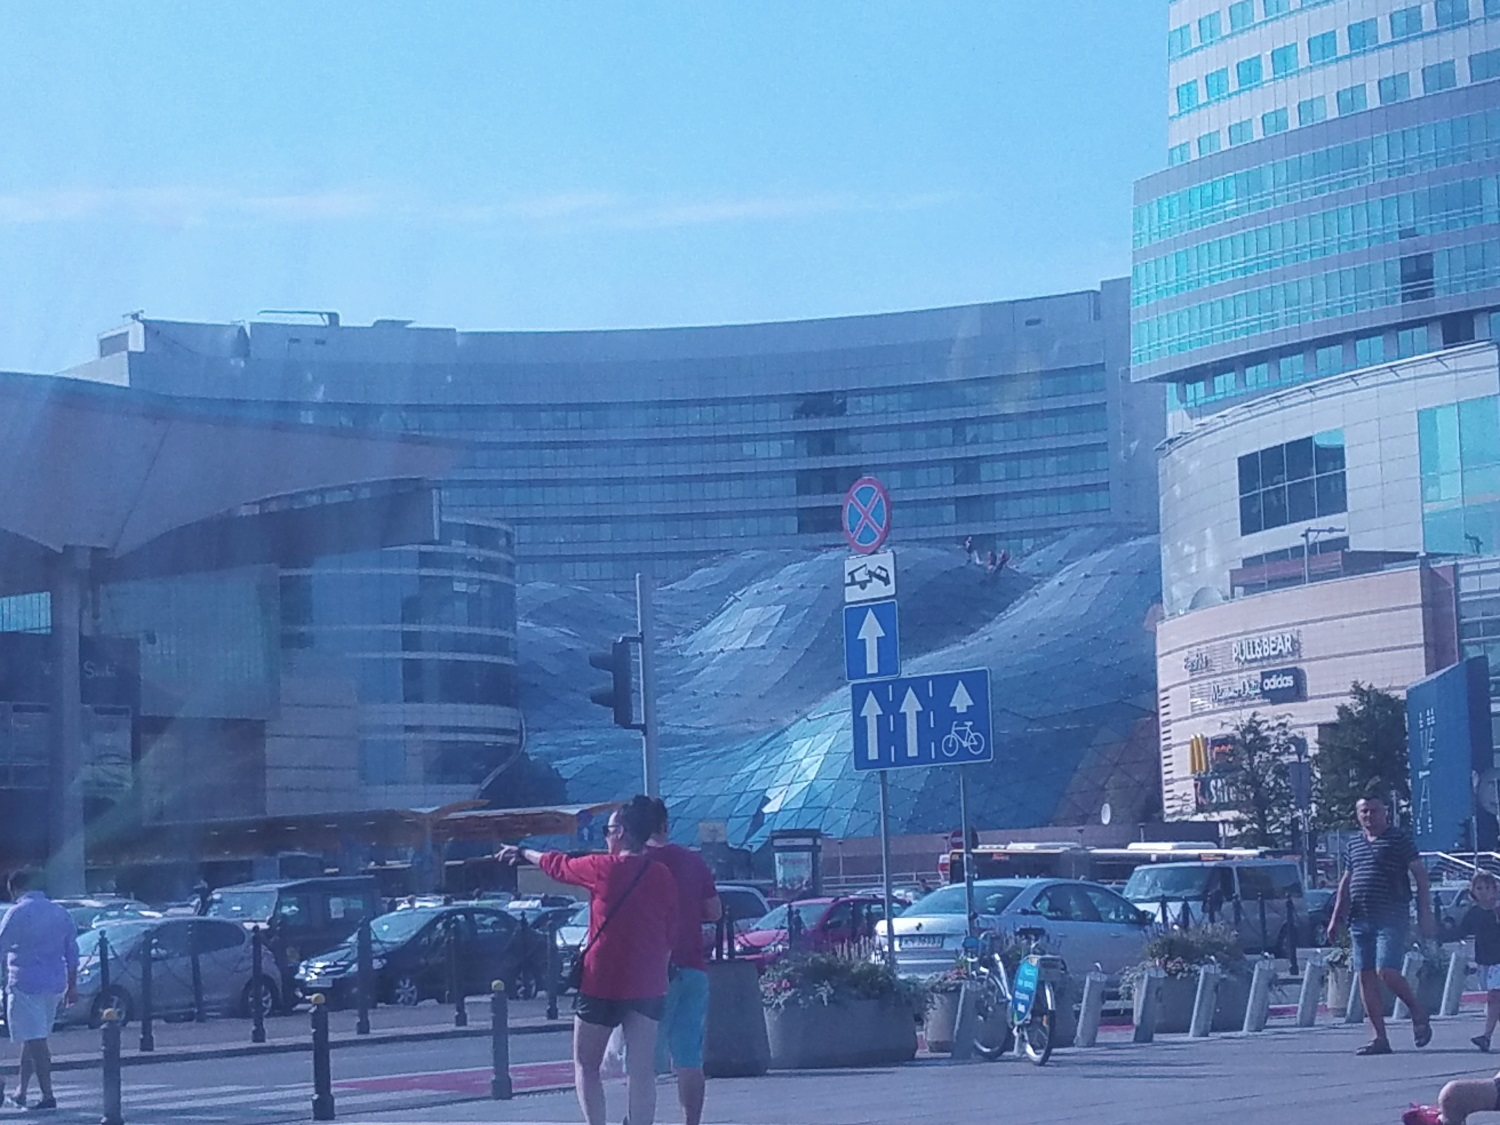 That curved roof is a mall - Zloty Tarasa - Golden Terrace